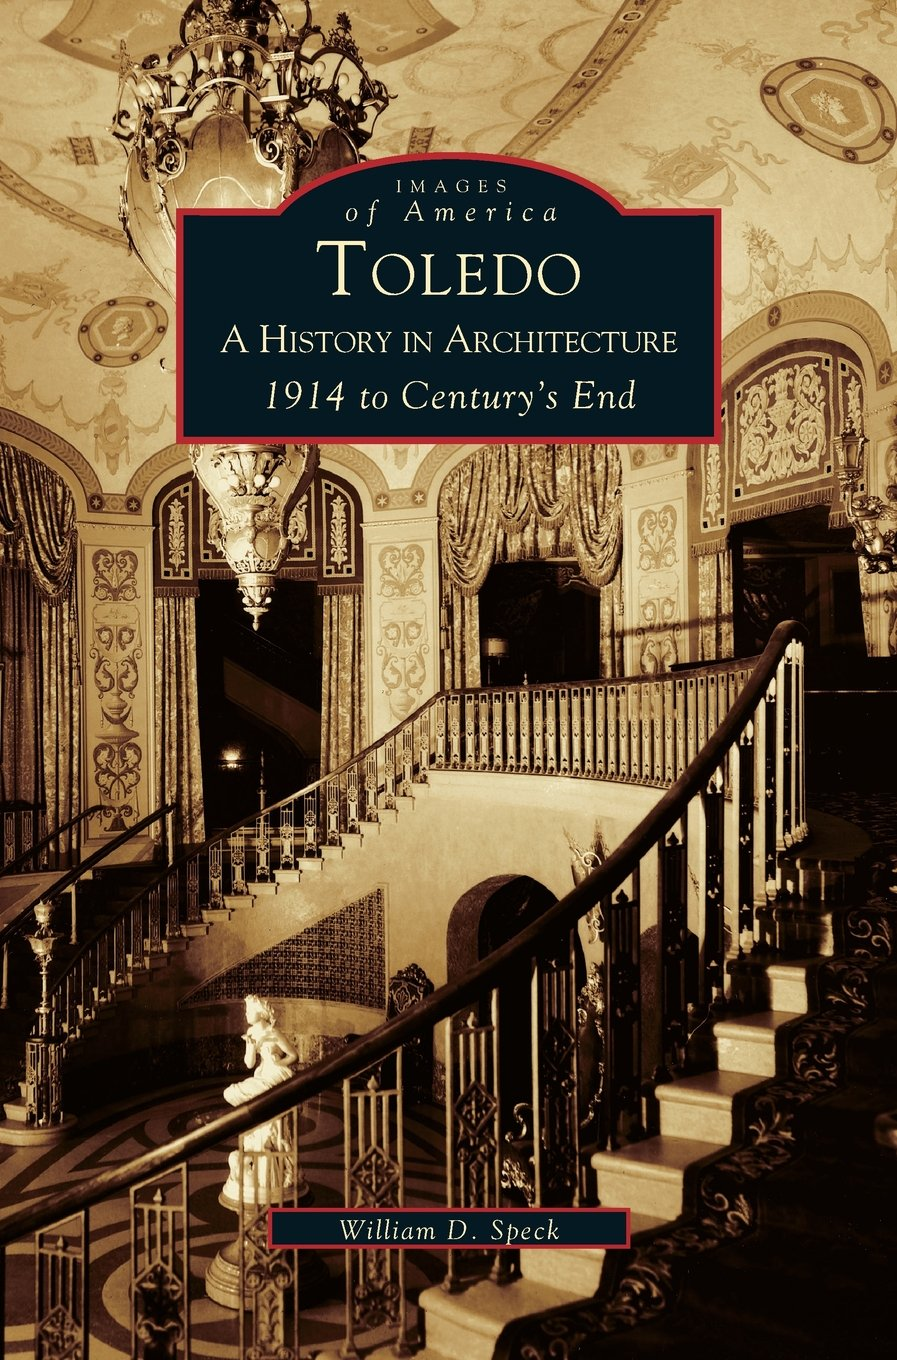 Download Toledo: A History in Architecture 1914 to Century's End PDF